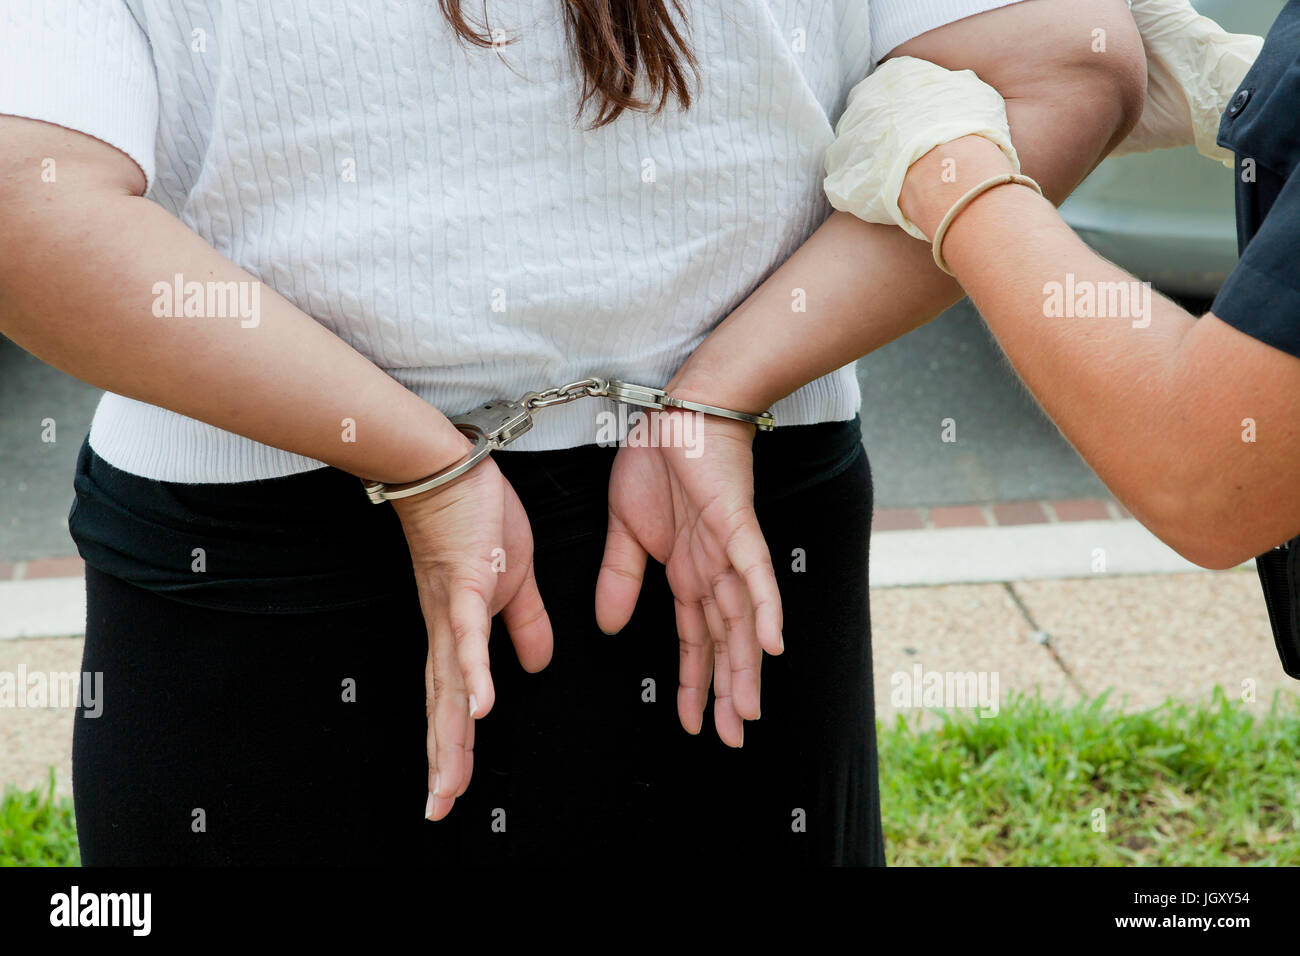 Woman handcuffed and arrested by police - USA - Stock Image